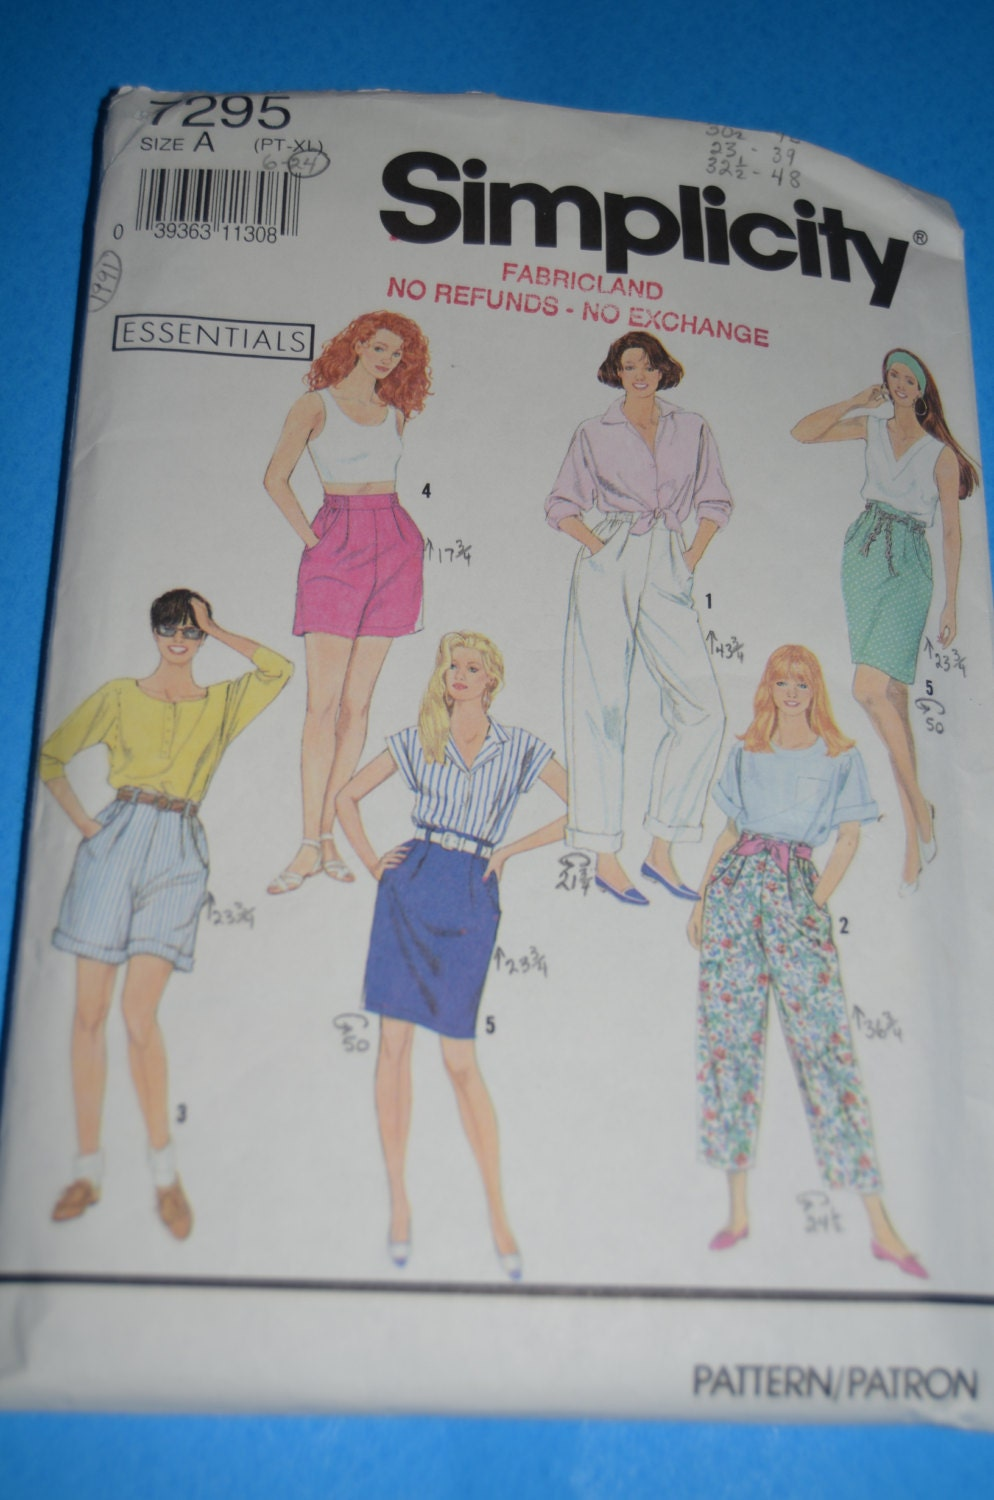 f73a18e4c25 Simplicity 7295 Misses Pants or Shorts each in two lengths and skirt Sewing  Pattern - UNCUT - Sizes Pt -XL from DestinedRendezvous on Etsy Studio